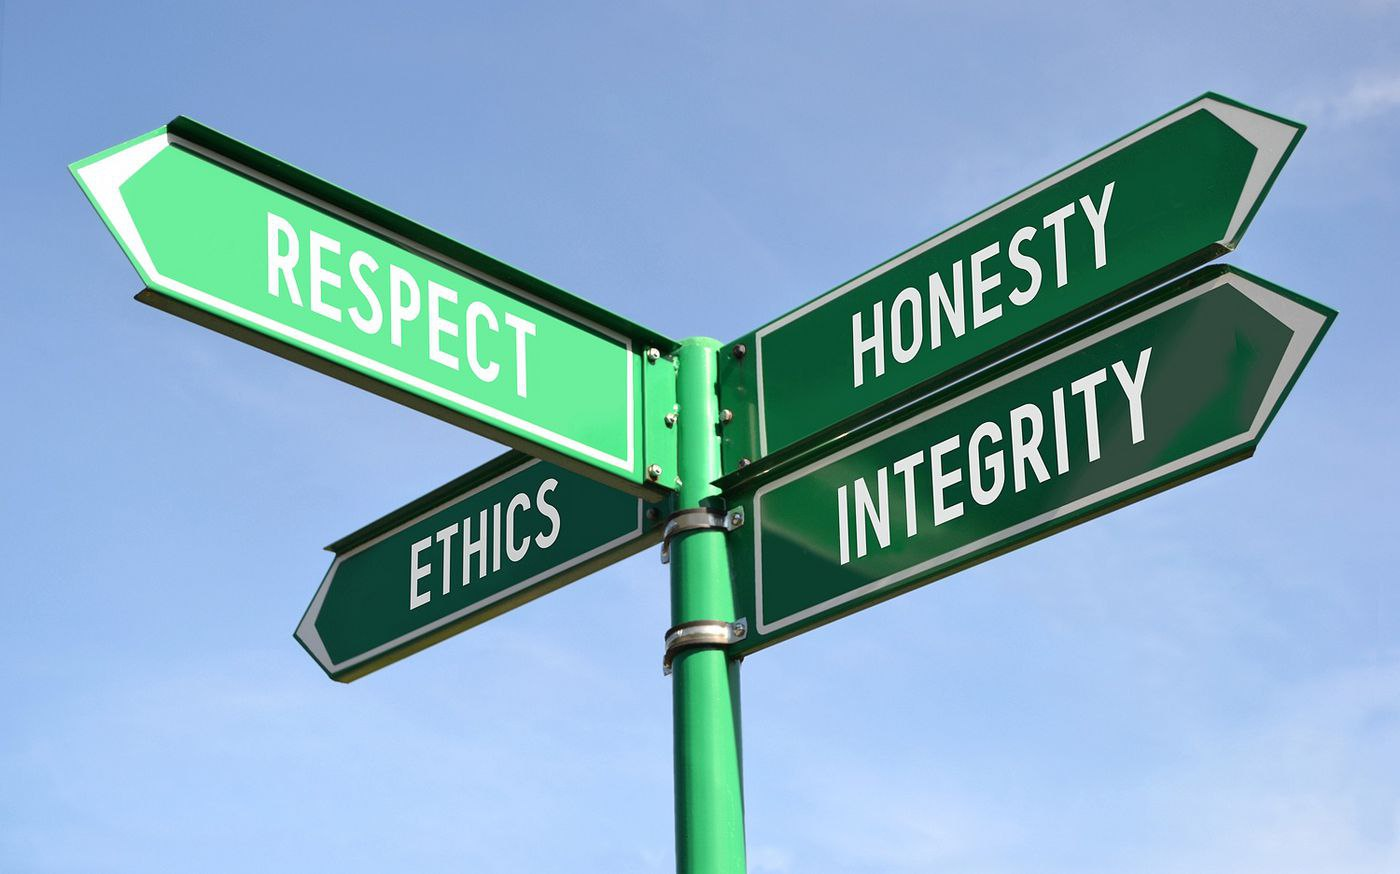 Reflections on Leadership | Faith and Integrity